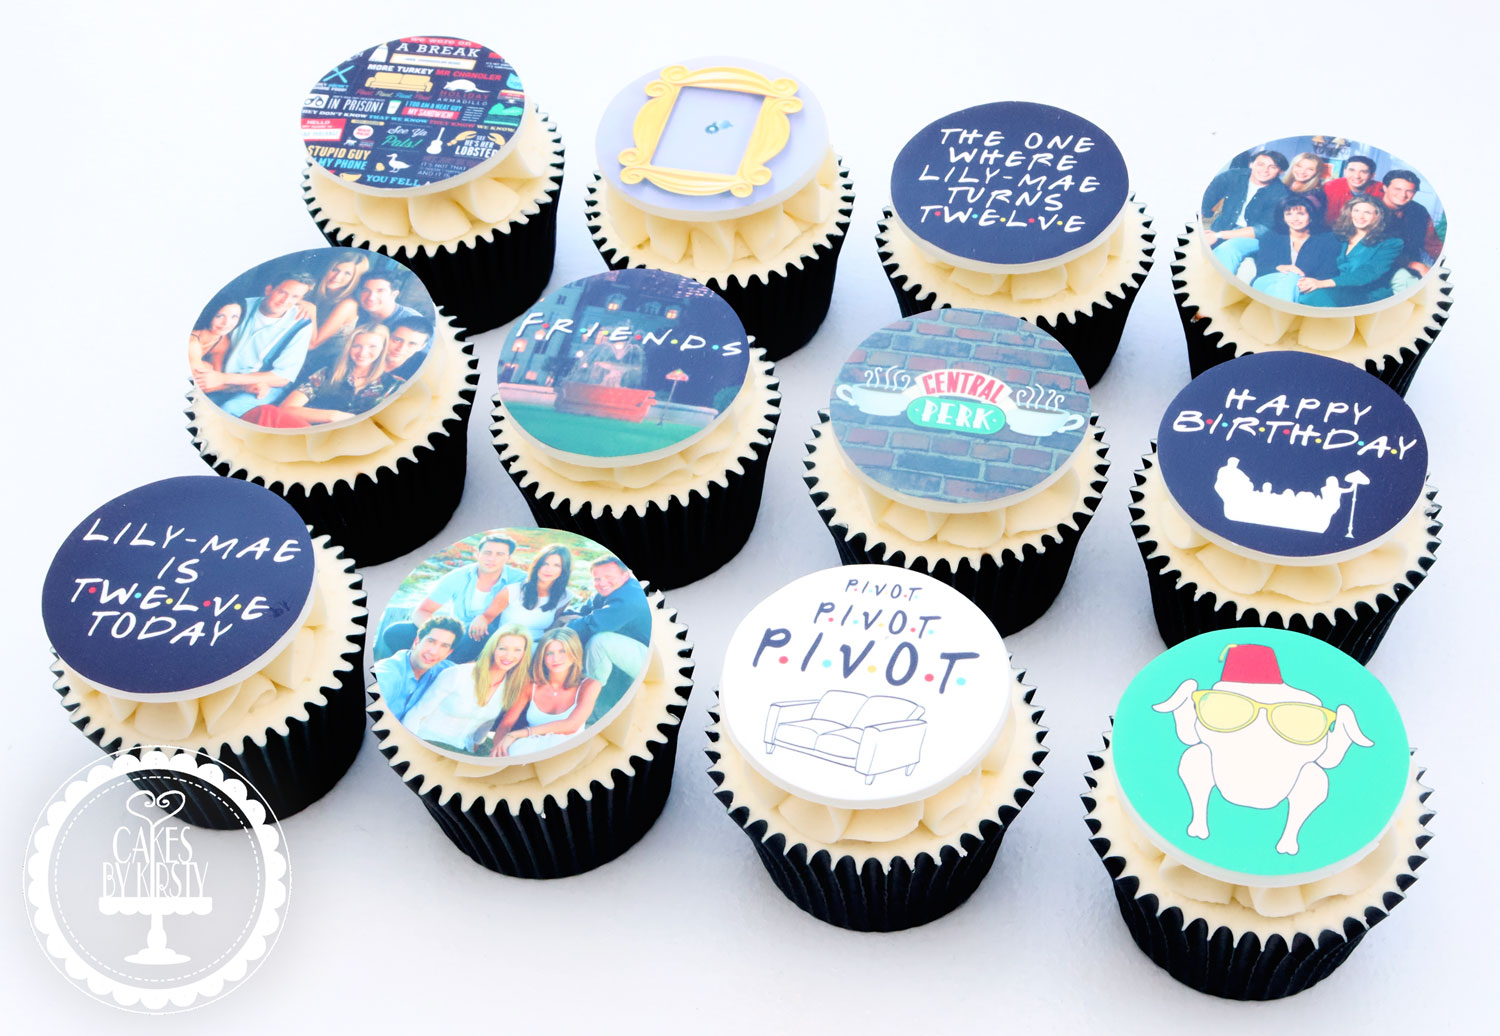 20201231 - Friends TV Show Cupcakes